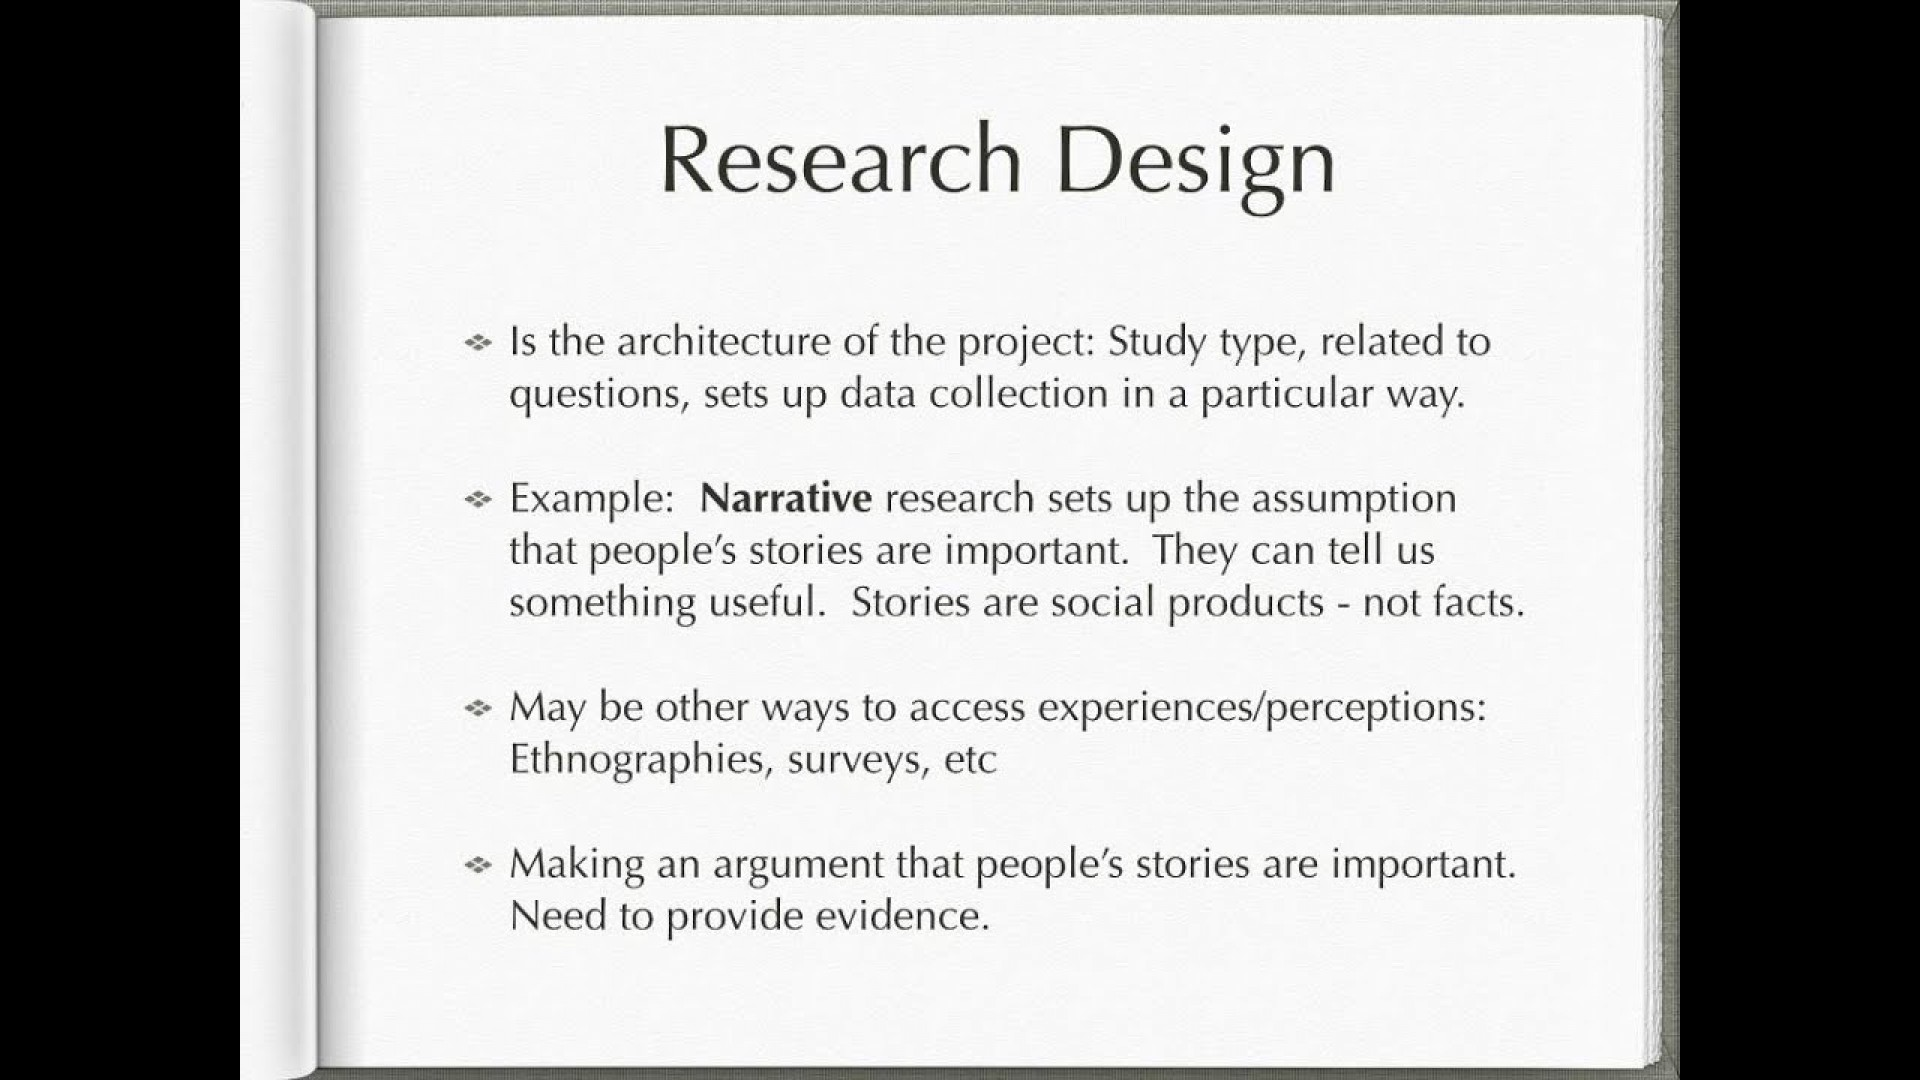 009 How To Write Research Paper Methodology Section Beautiful A The Of Qualitative Pdf 1920